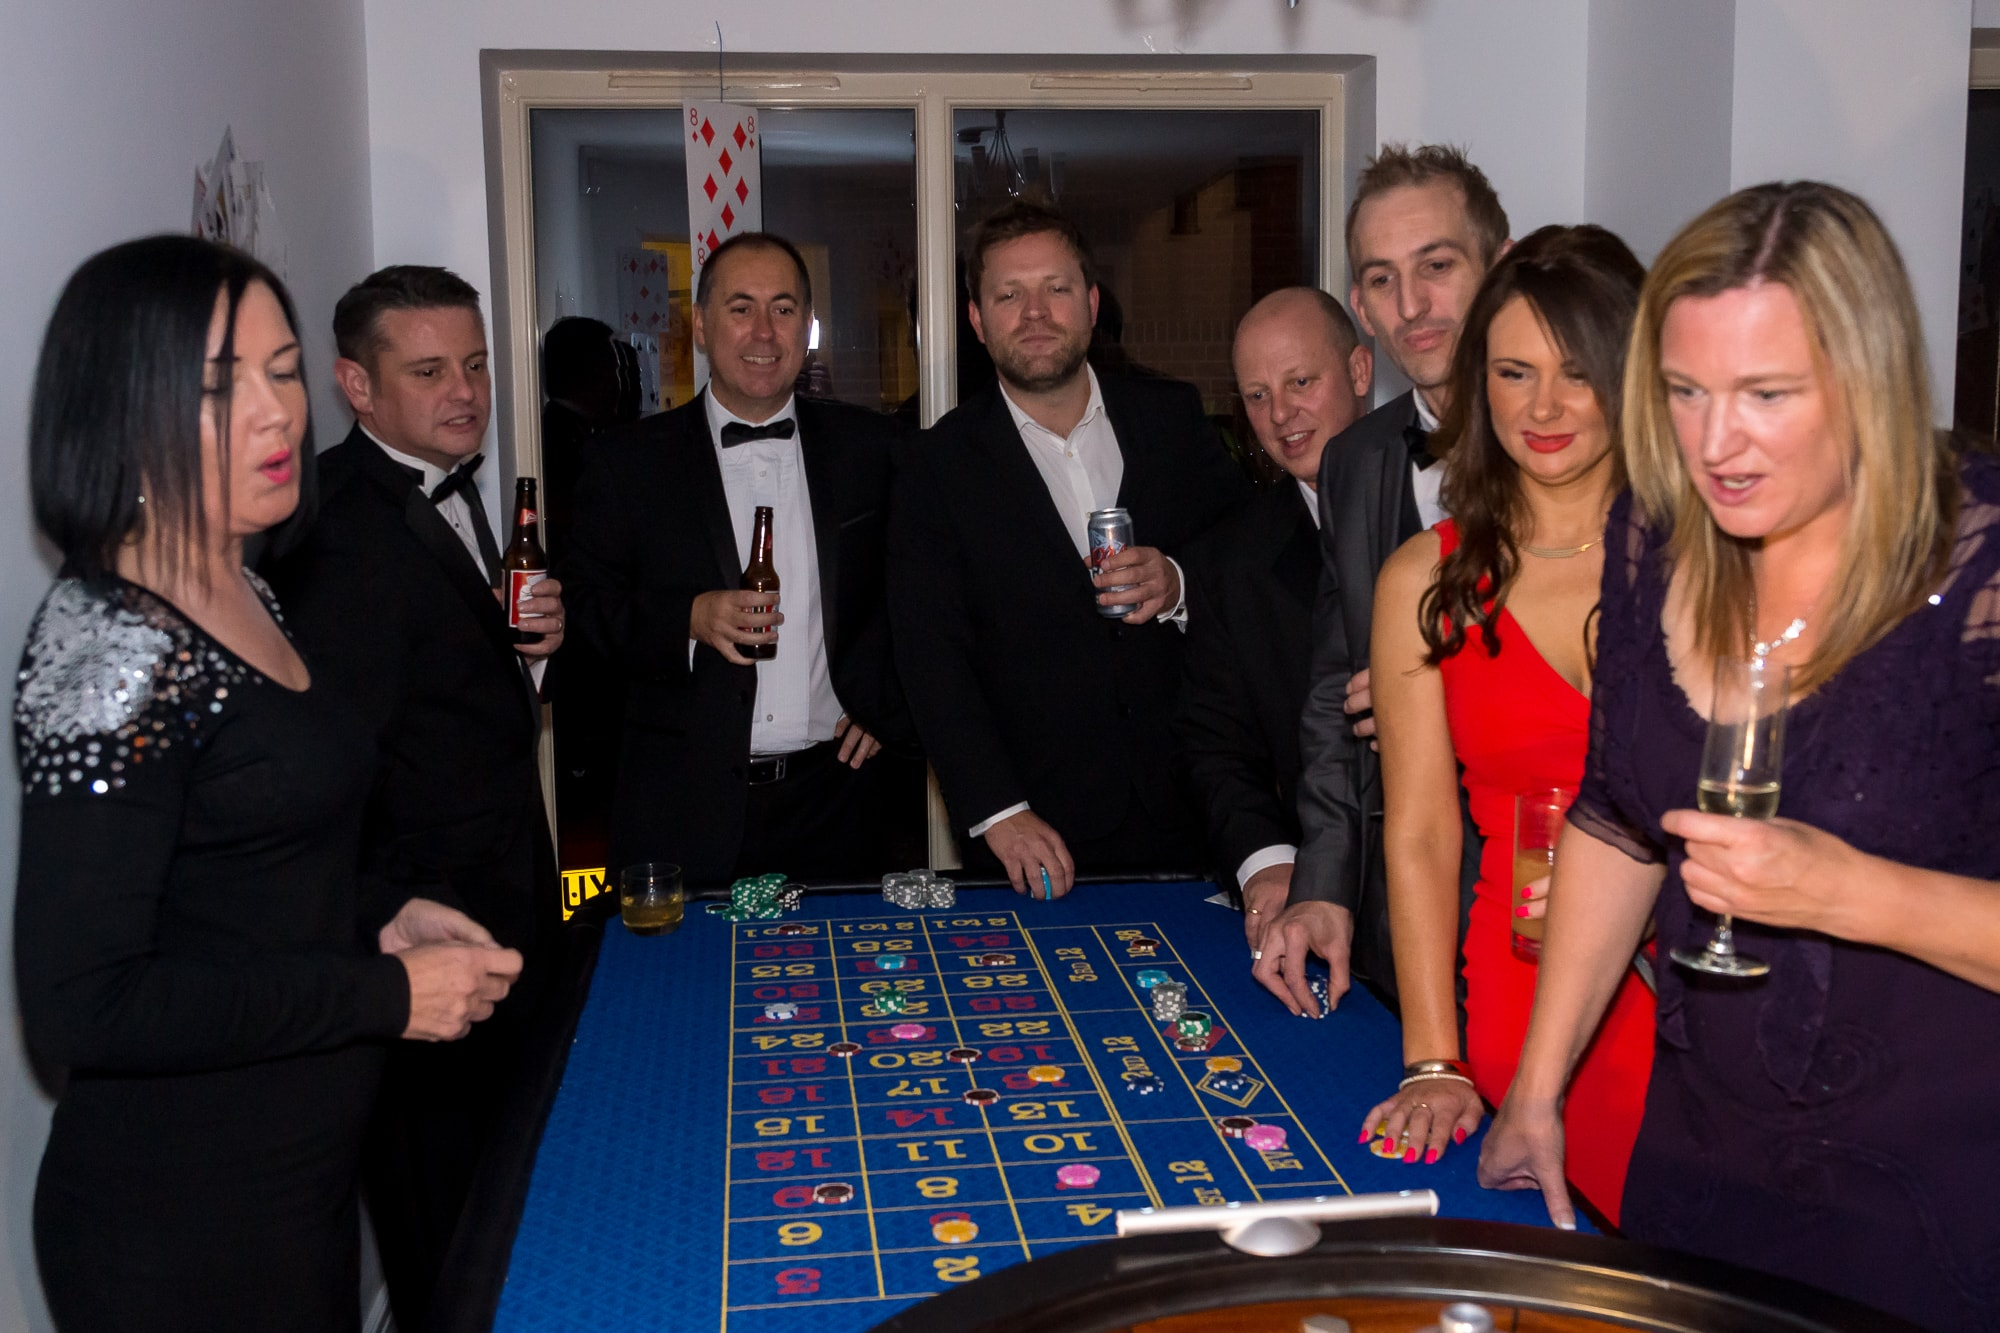 Midlands casino hire